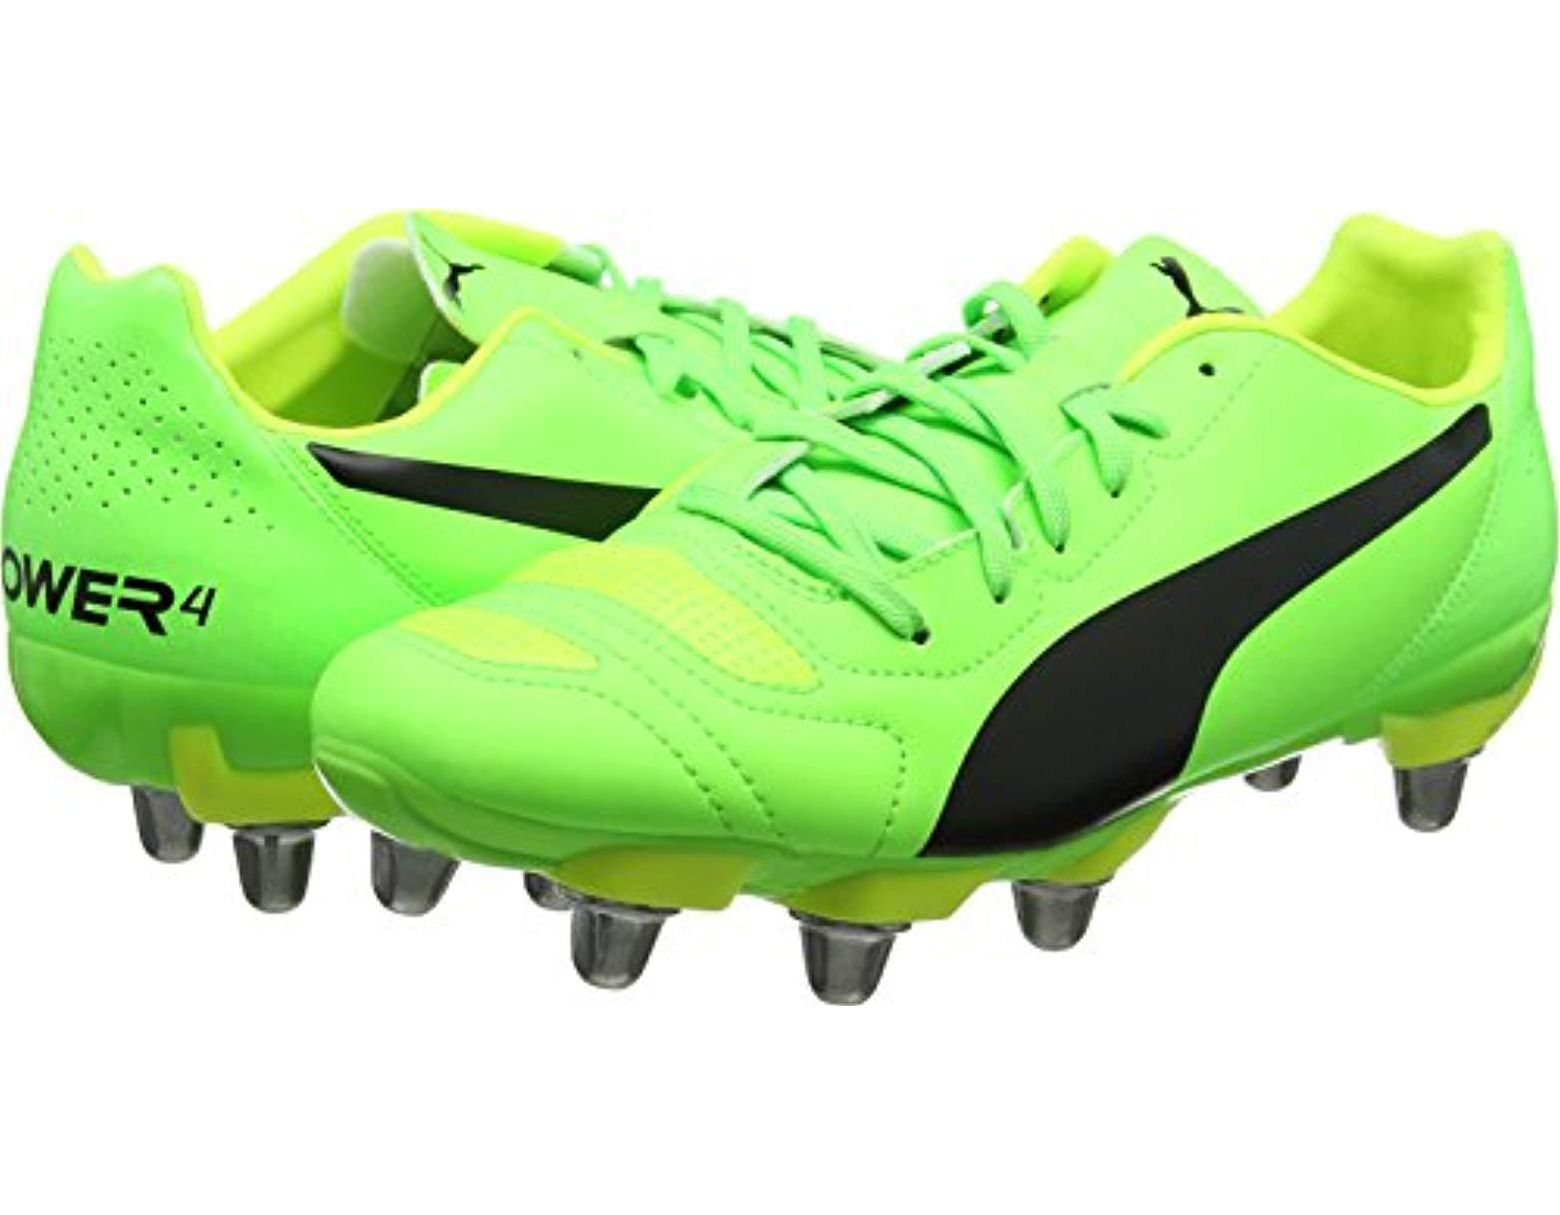 3ea8d63cdec35 Men's Green Evopower 4.2 Rugby H8 Boots